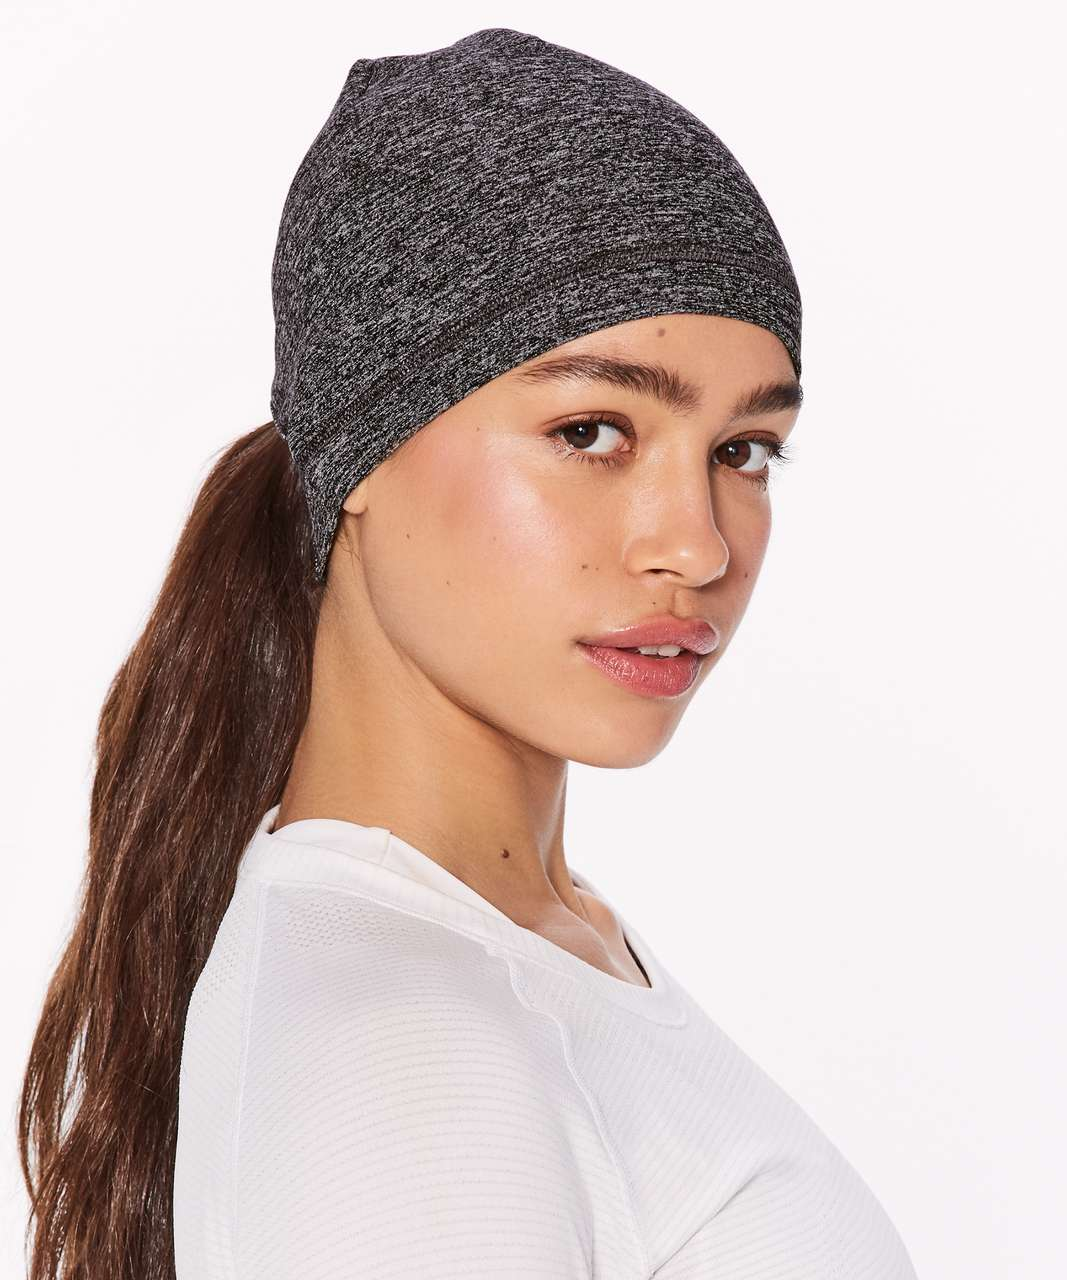 24582fed05d8e Lululemon Run It Out Toque (Special Edition) - Reconnect Heathered Black  Silver Reflective